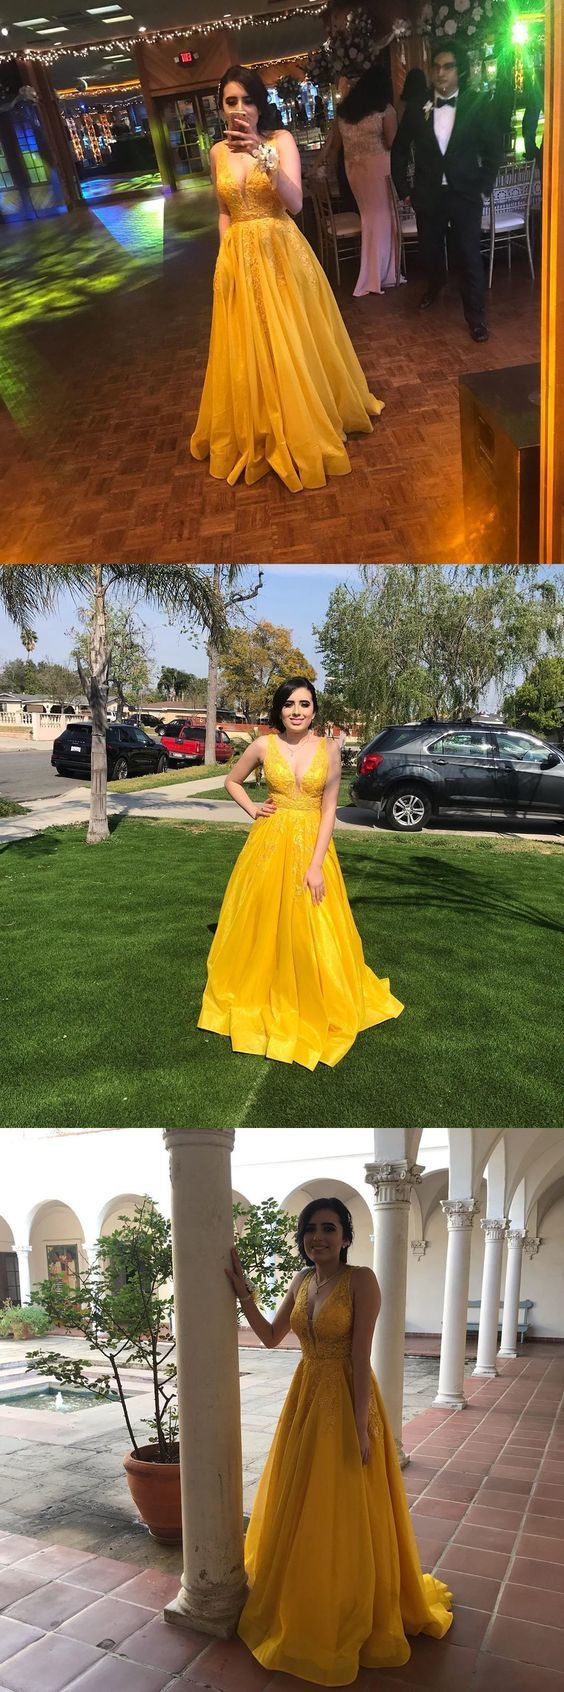 Princess Long Prom Dresses Yellow, Lace Prom Dresses for Teens,2087